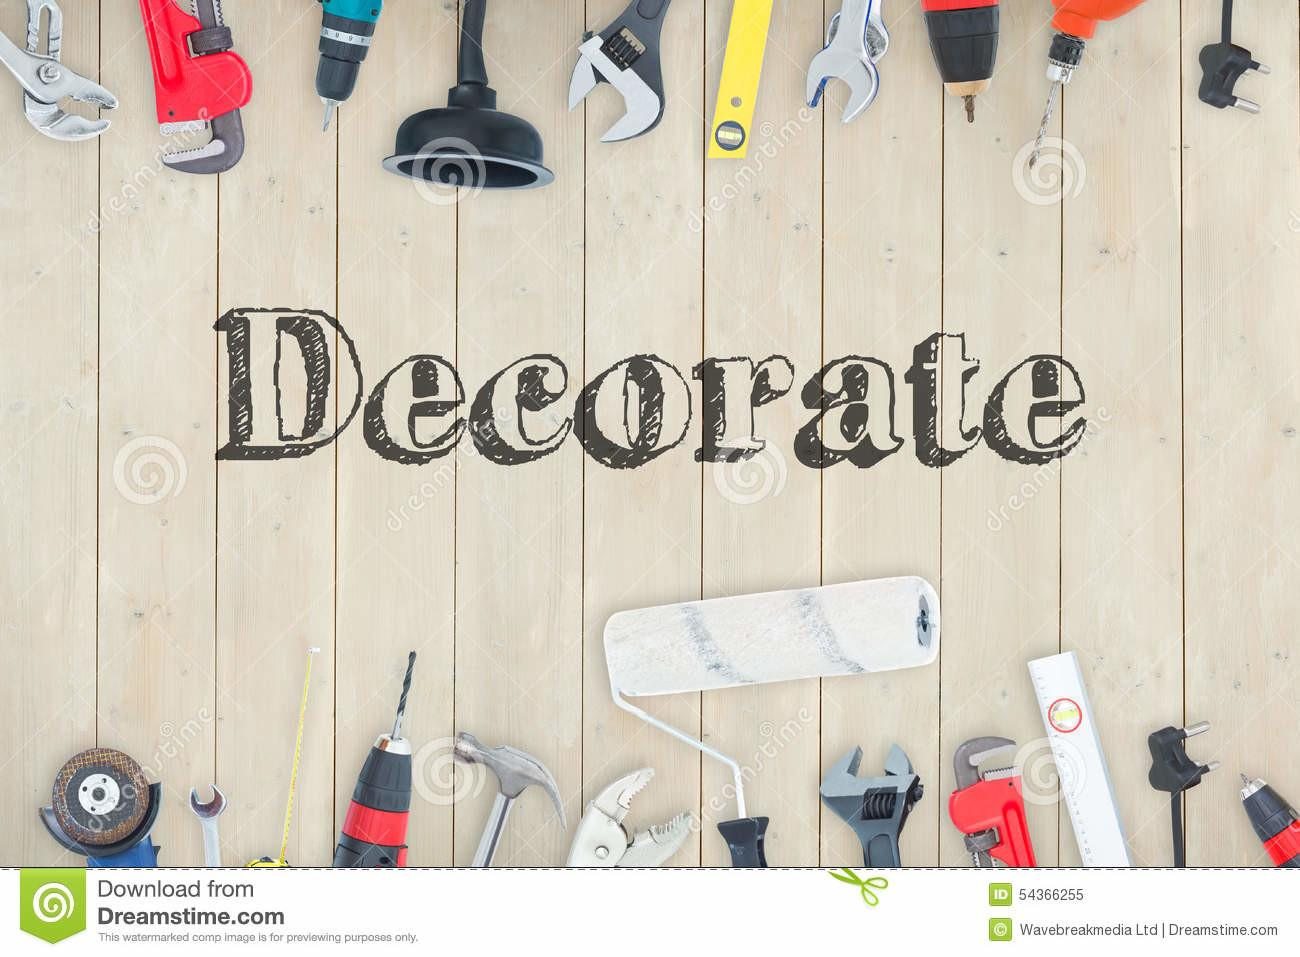 Decorate Against Diy Tools Wooden Stock